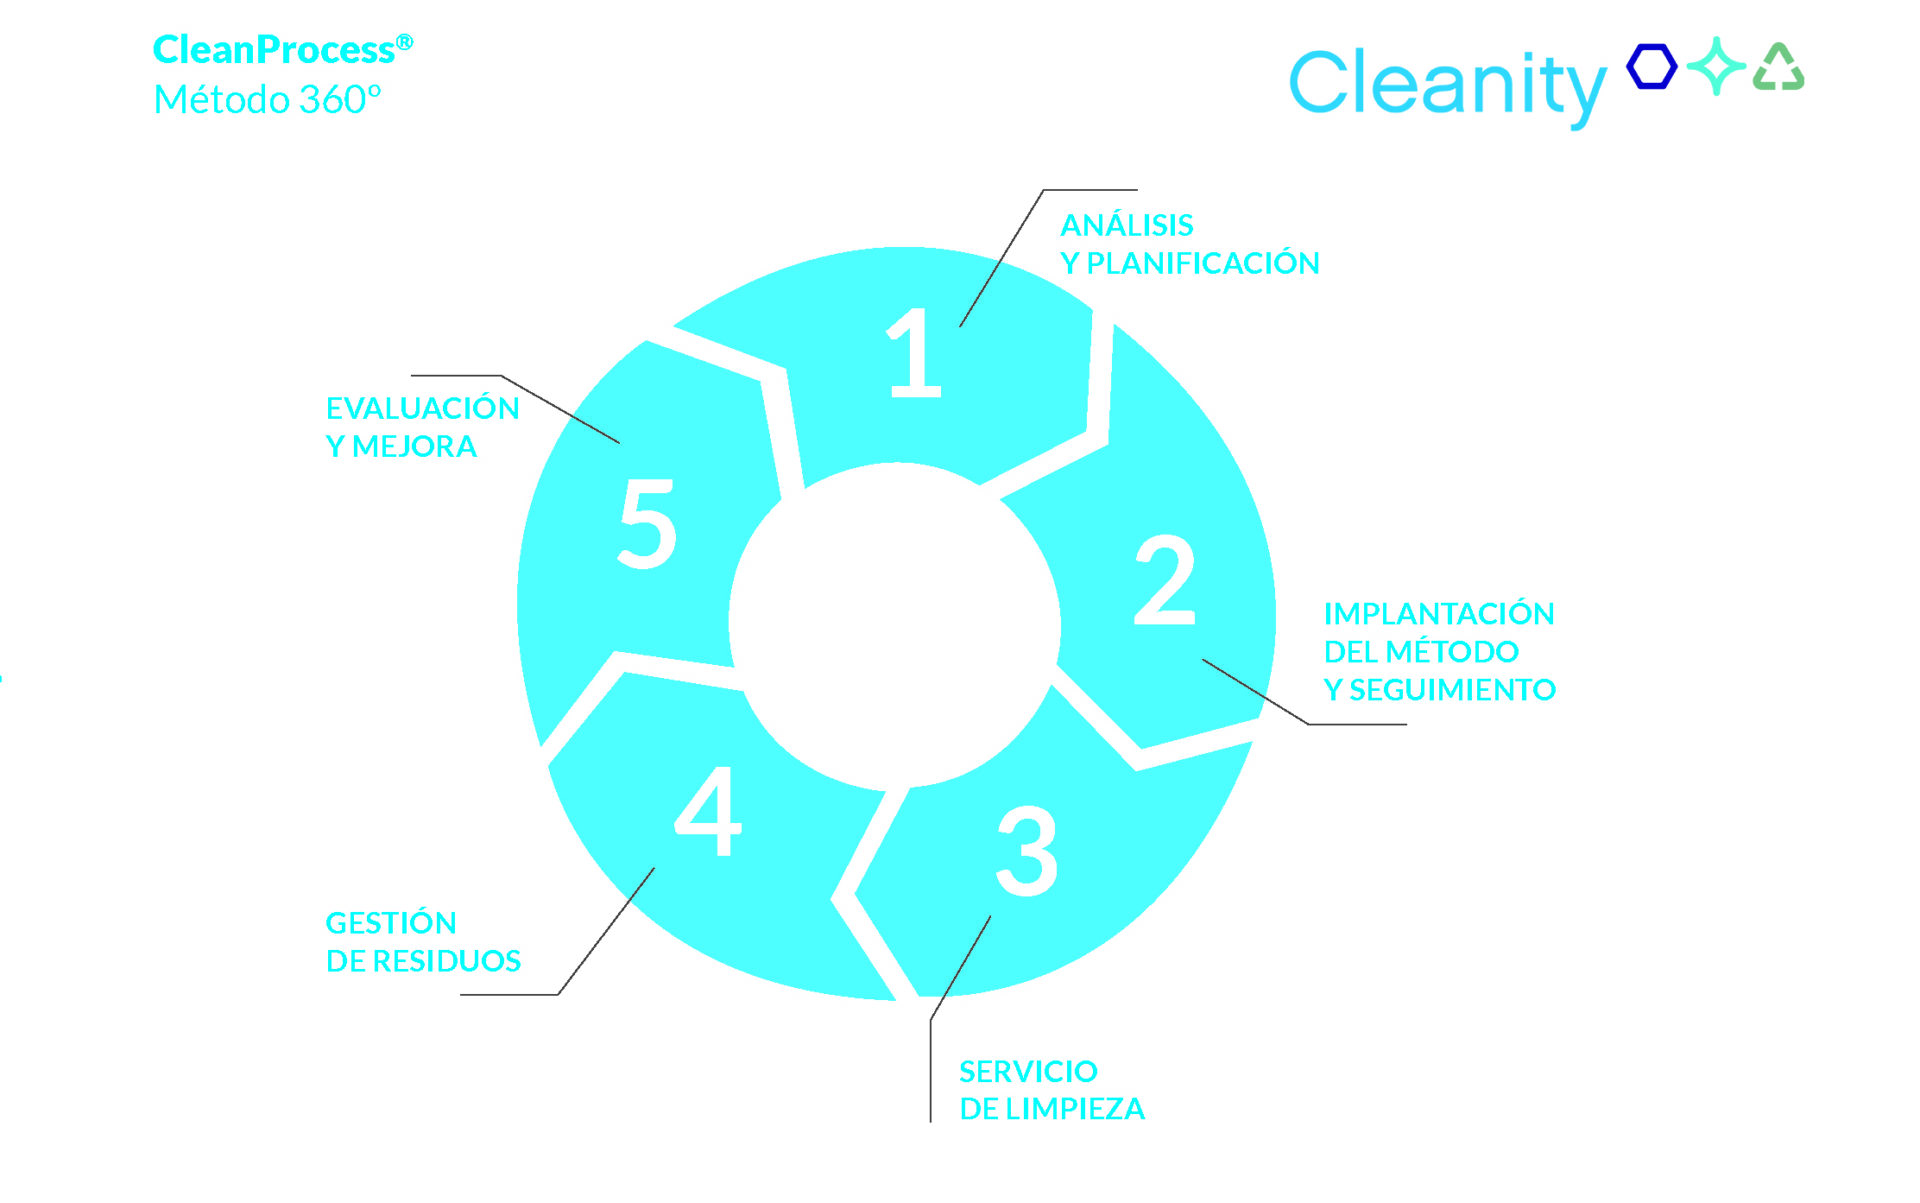 cleanprocess Cleanity